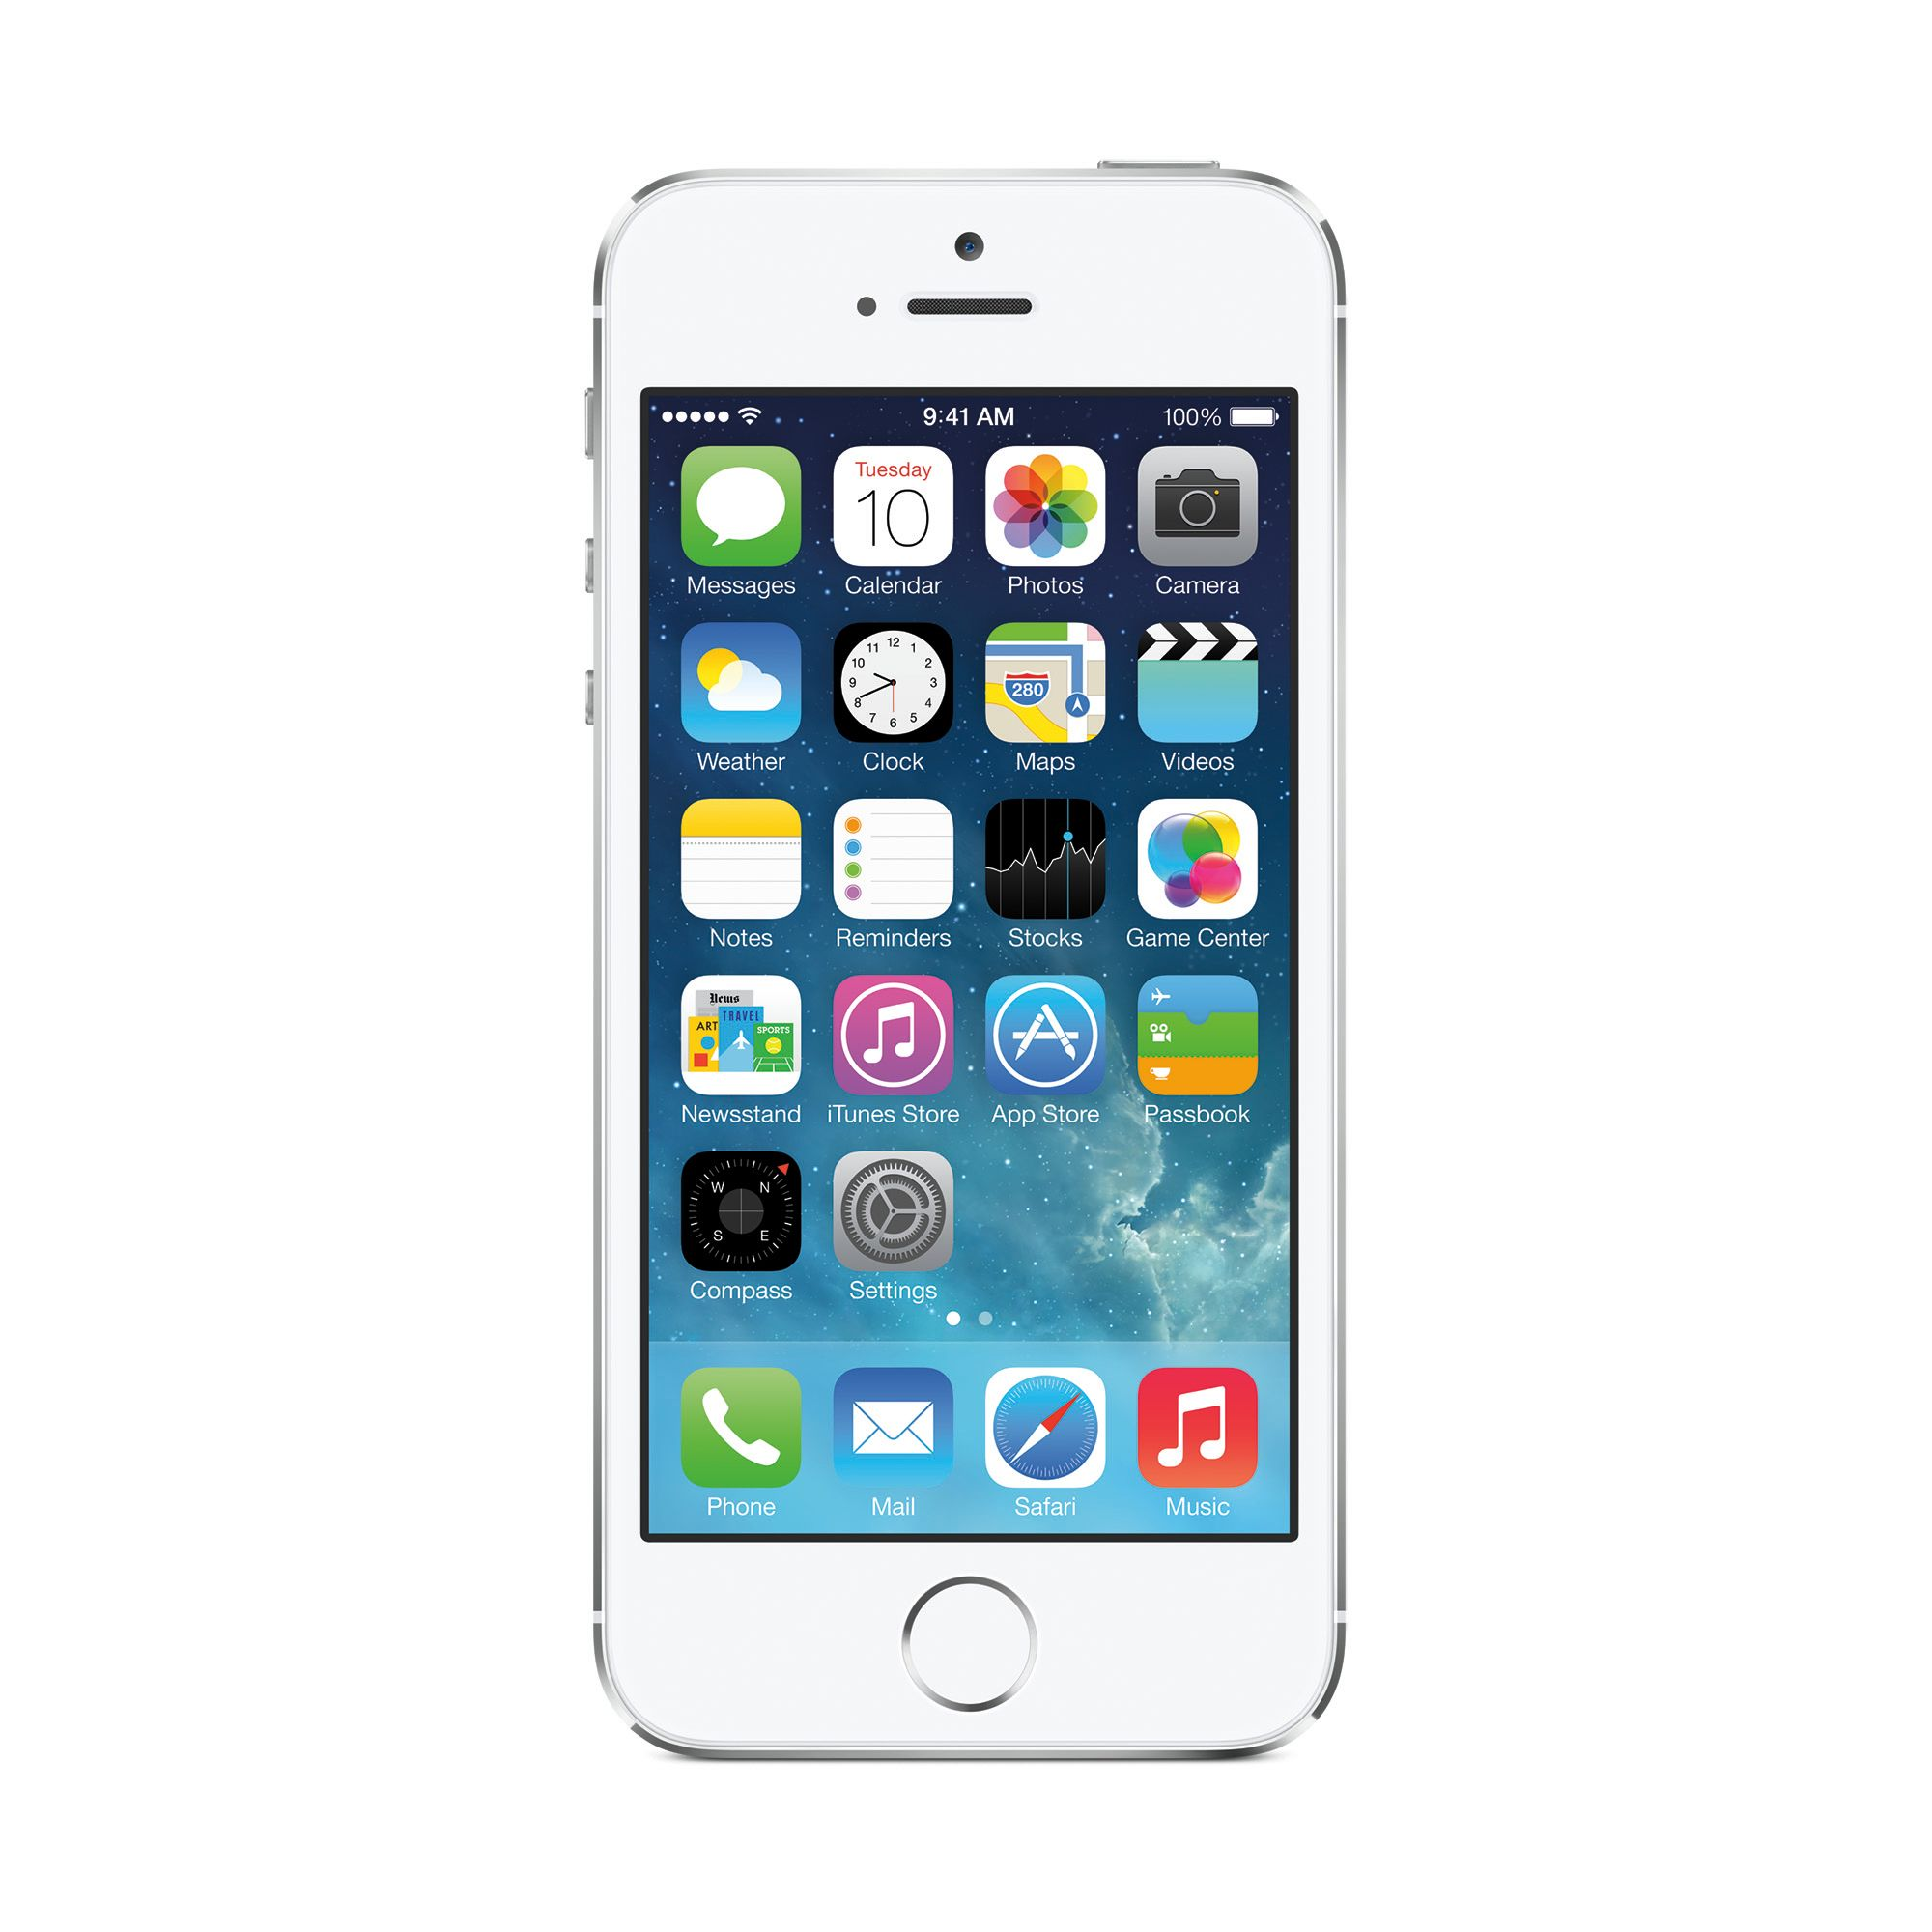 Straight Talk Prepaid Apple iPhone 5S 16GB CDMA Smartphone, Refurbished Image 1 of 1